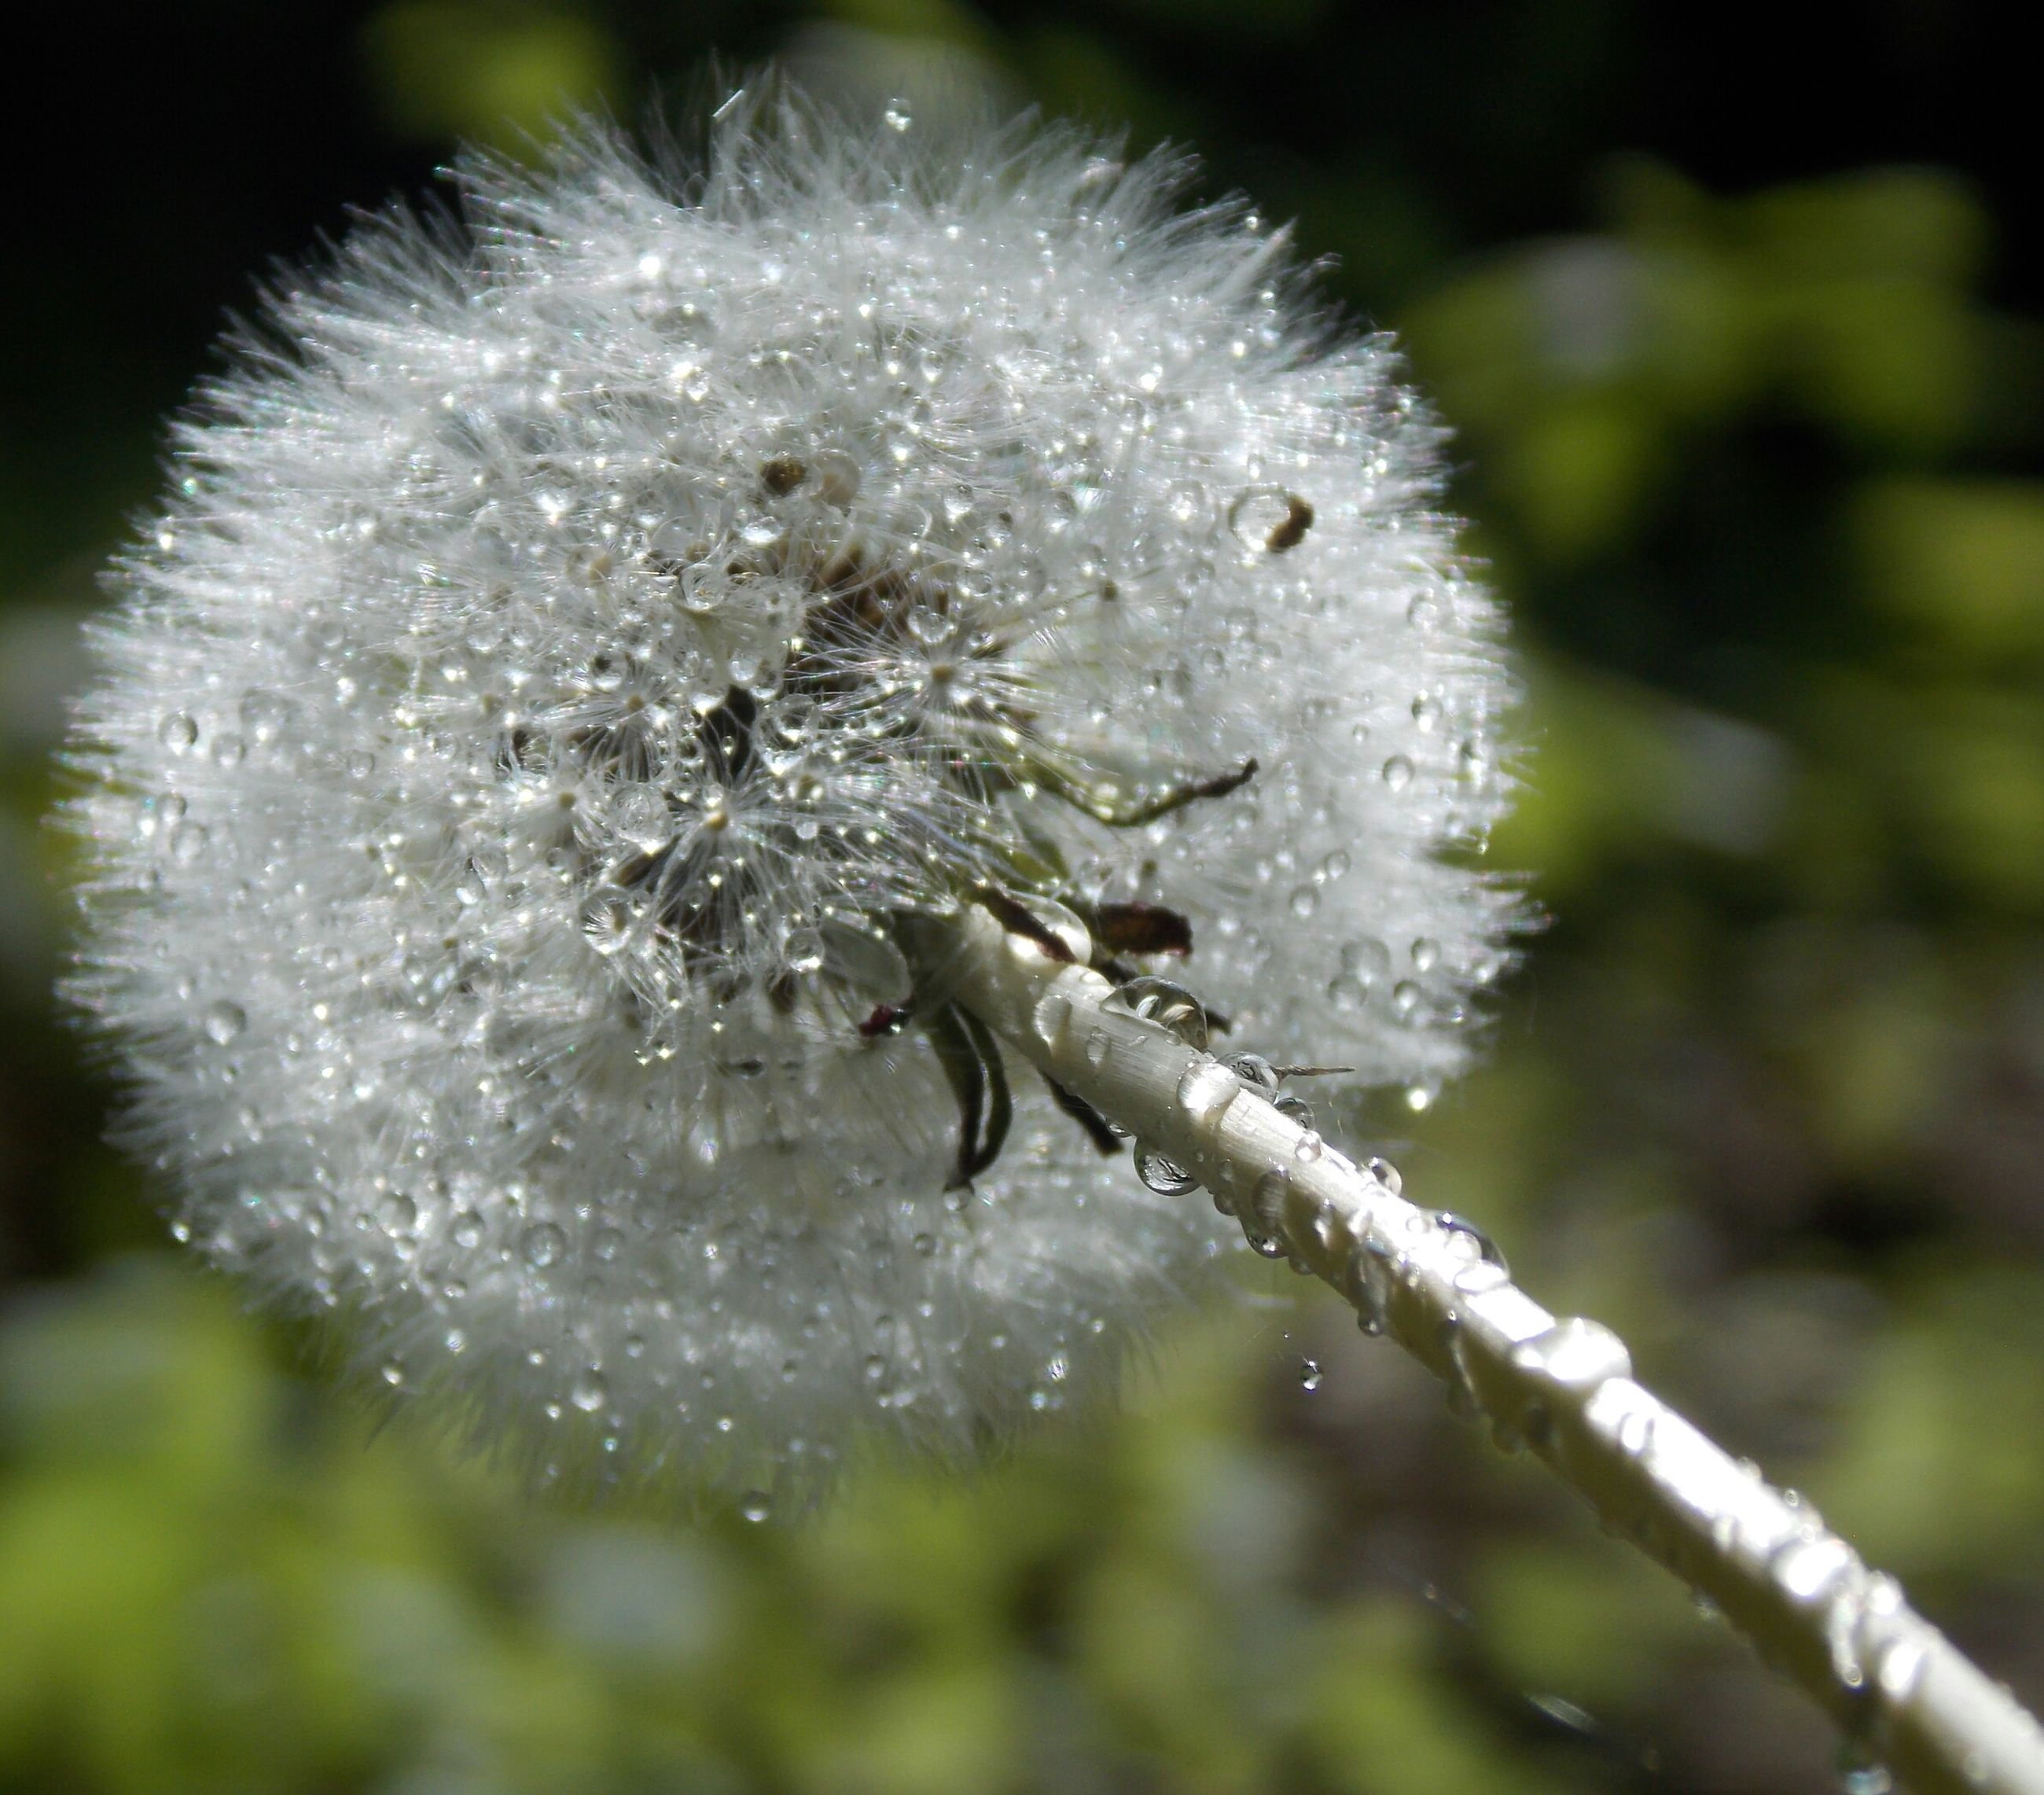 flower, close-up, fragility, animal themes, animals in the wild, focus on foreground, wildlife, white color, one animal, growth, nature, freshness, beauty in nature, dandelion, single flower, flower head, selective focus, insect, plant, day